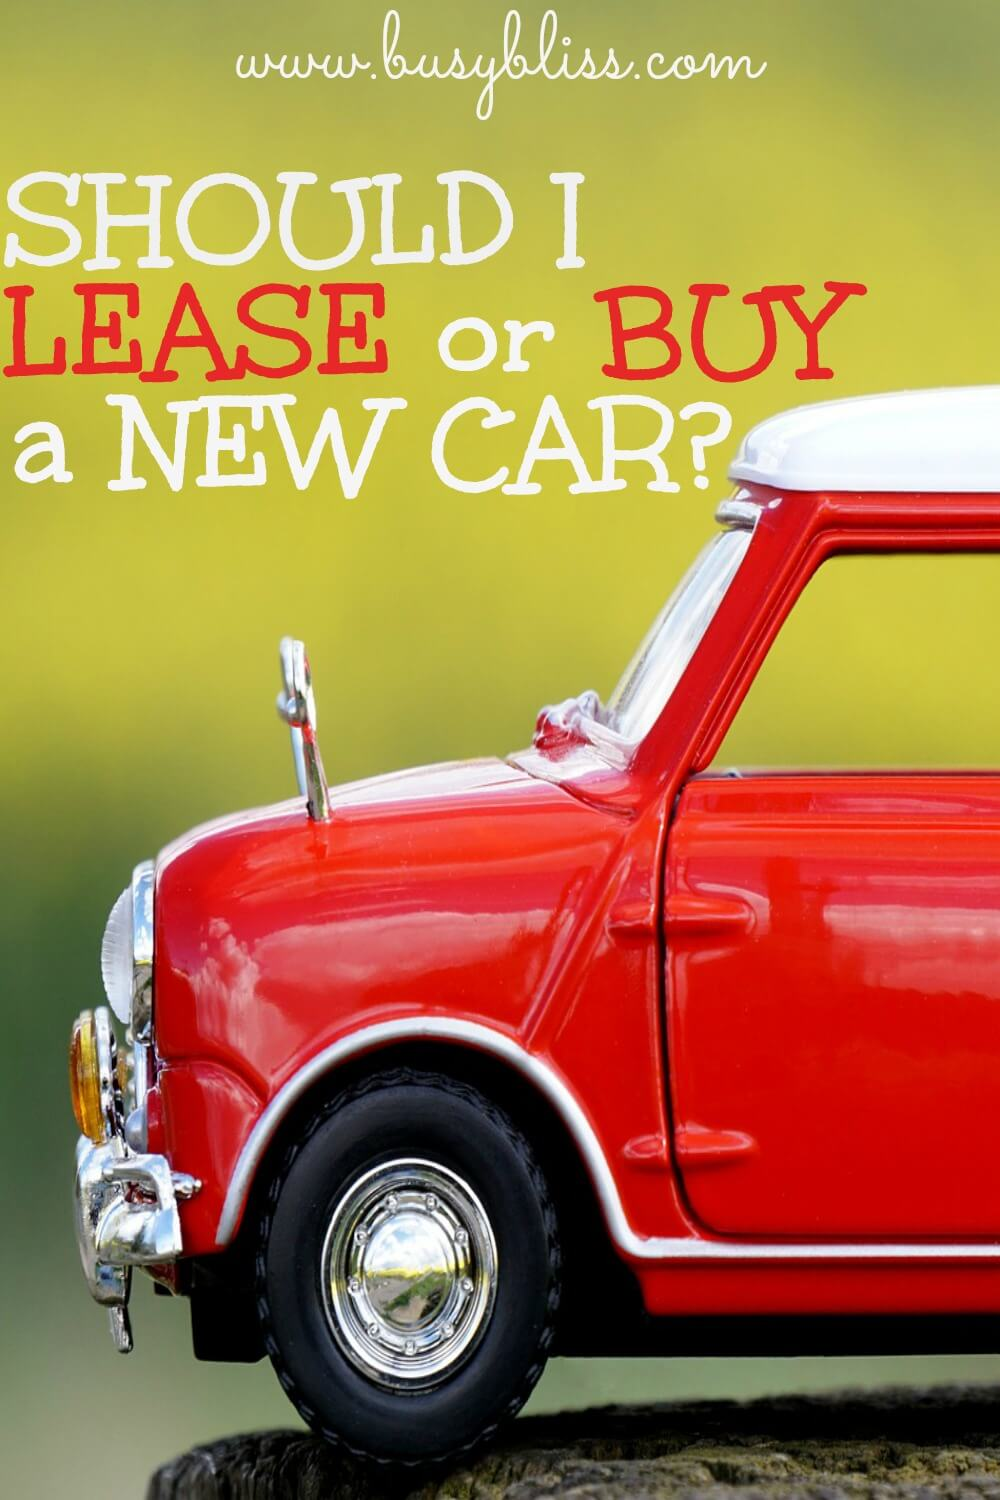 Should I Lease or Buy a New Car? - Busy Bliss